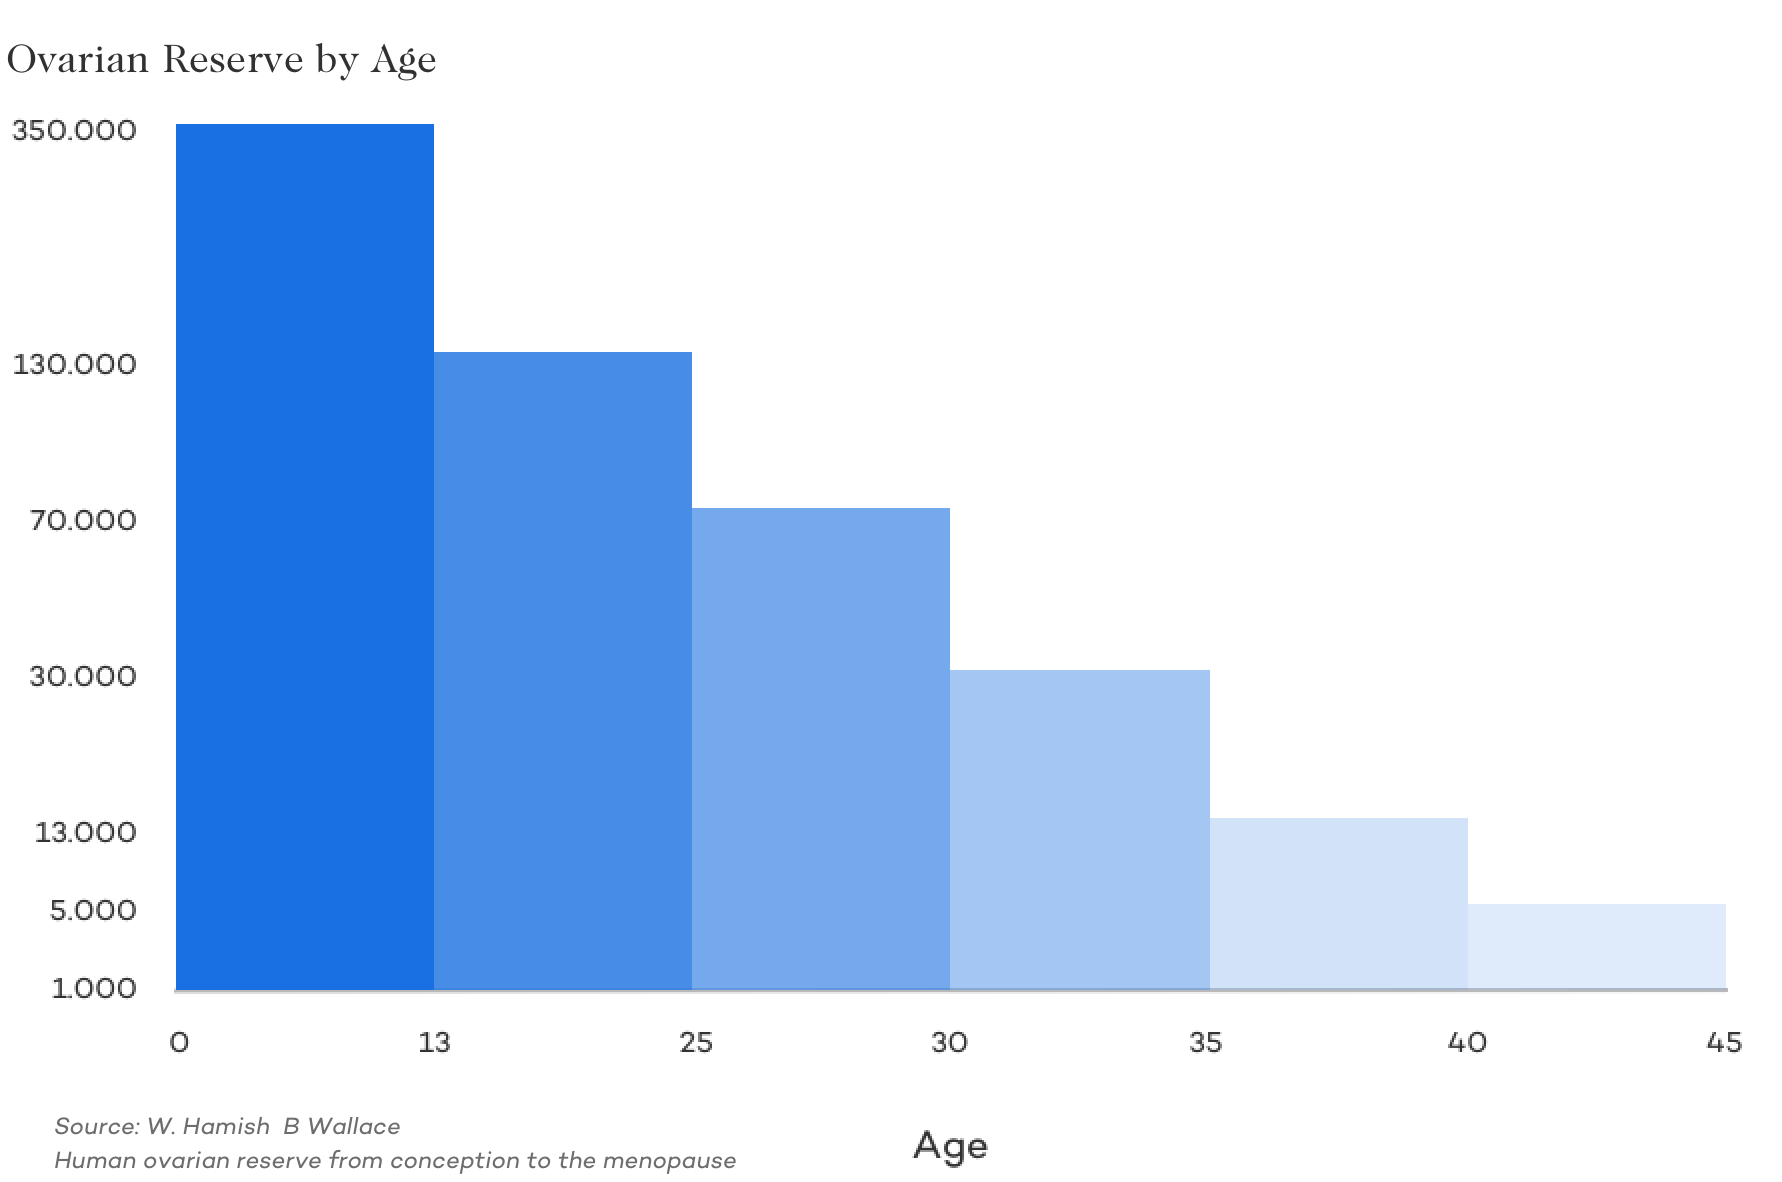 Ovarian Reserve by Age